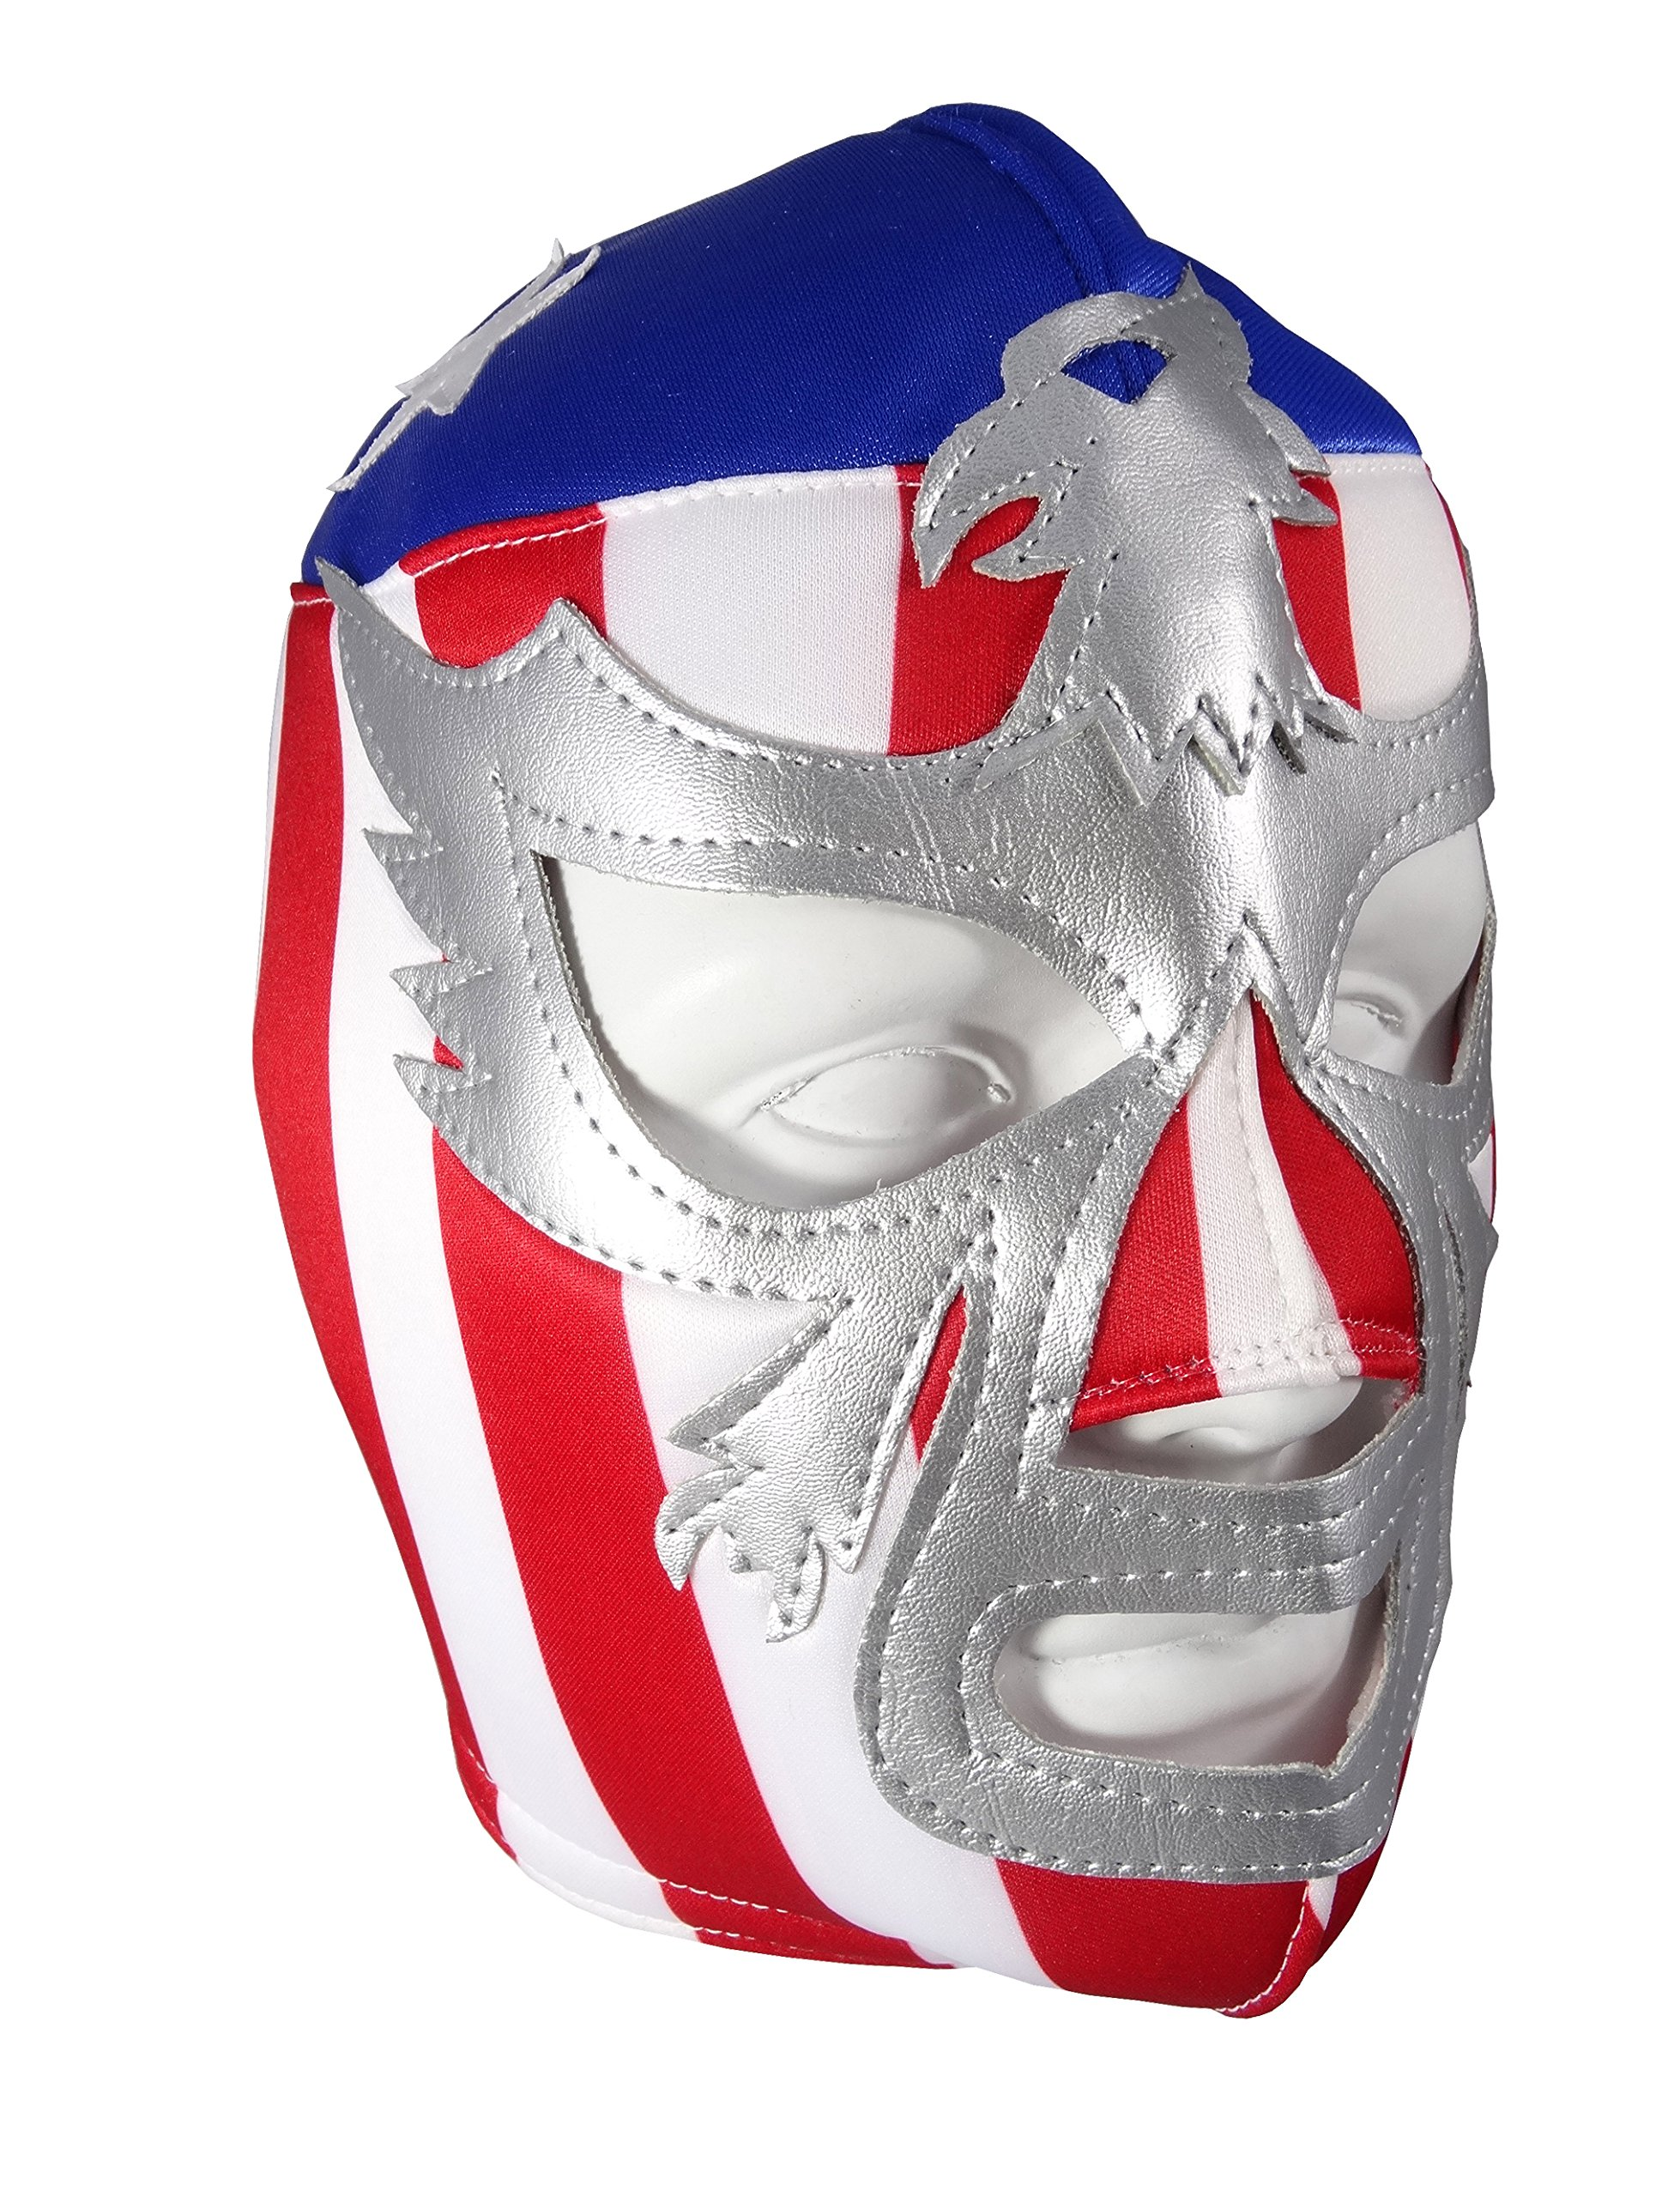 PATRIOT AMERICA Adult Lucha Libre Wrestling Mask (pro-fit) Costume Wear - Stripes by Mask Maniac